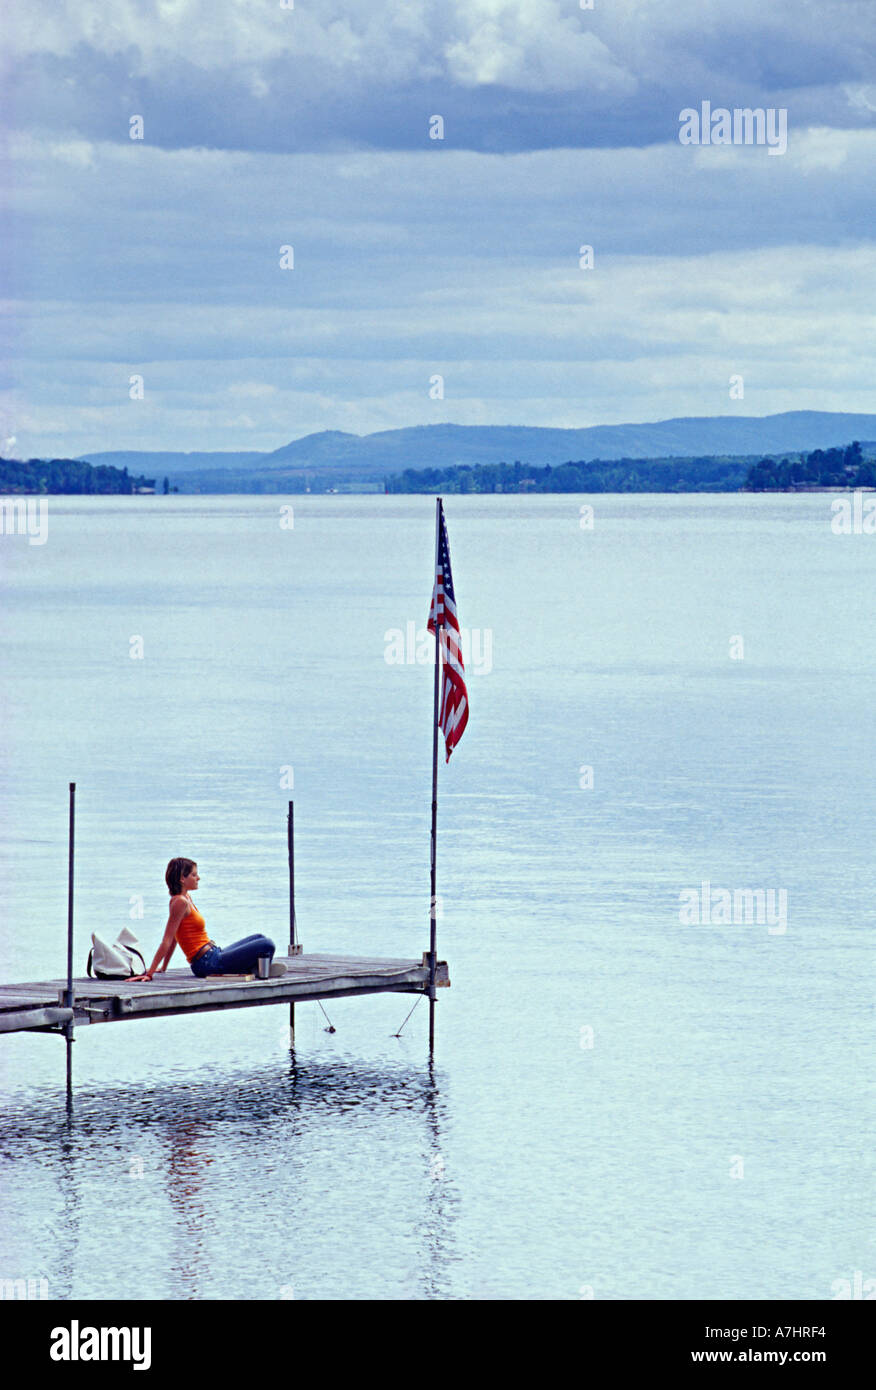 Woman Sitting on Dock with Flag on Lake Champaign Woman Wood Dock lake water American Flag Clouds Sky Blue Calm United States - Stock Image